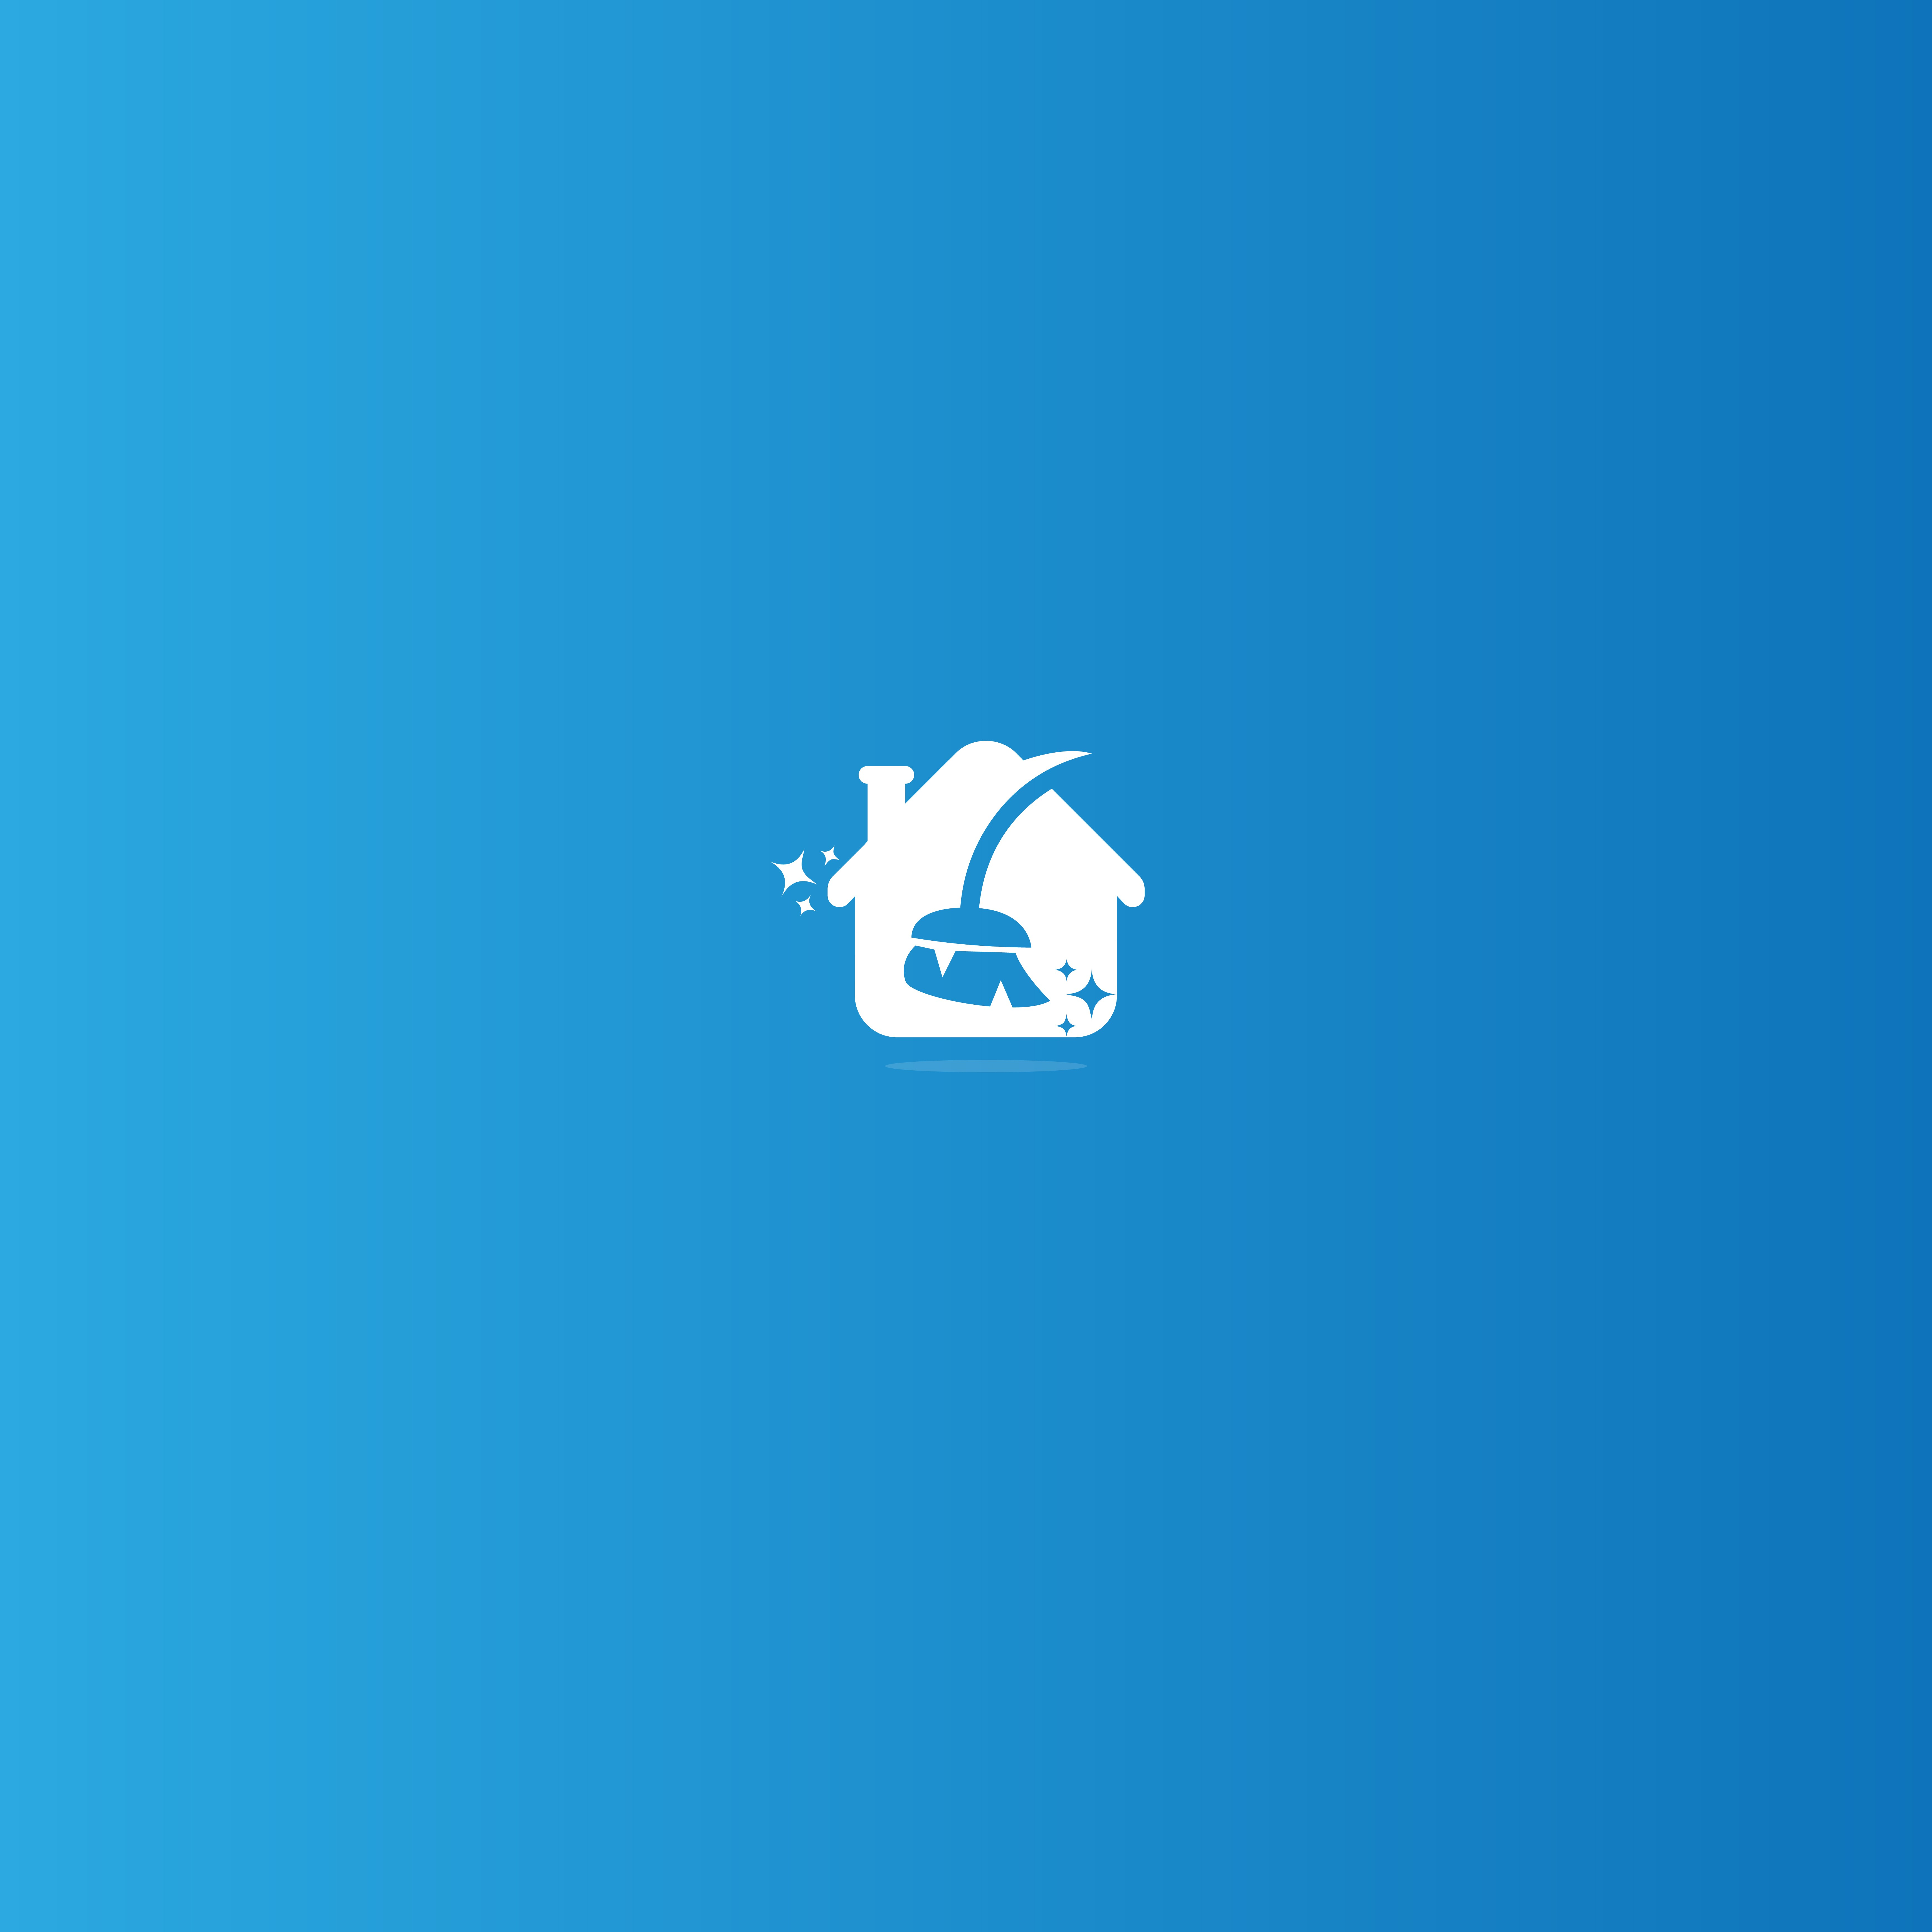 Design a friendly yet modern and professional logo for a house cleaning business.